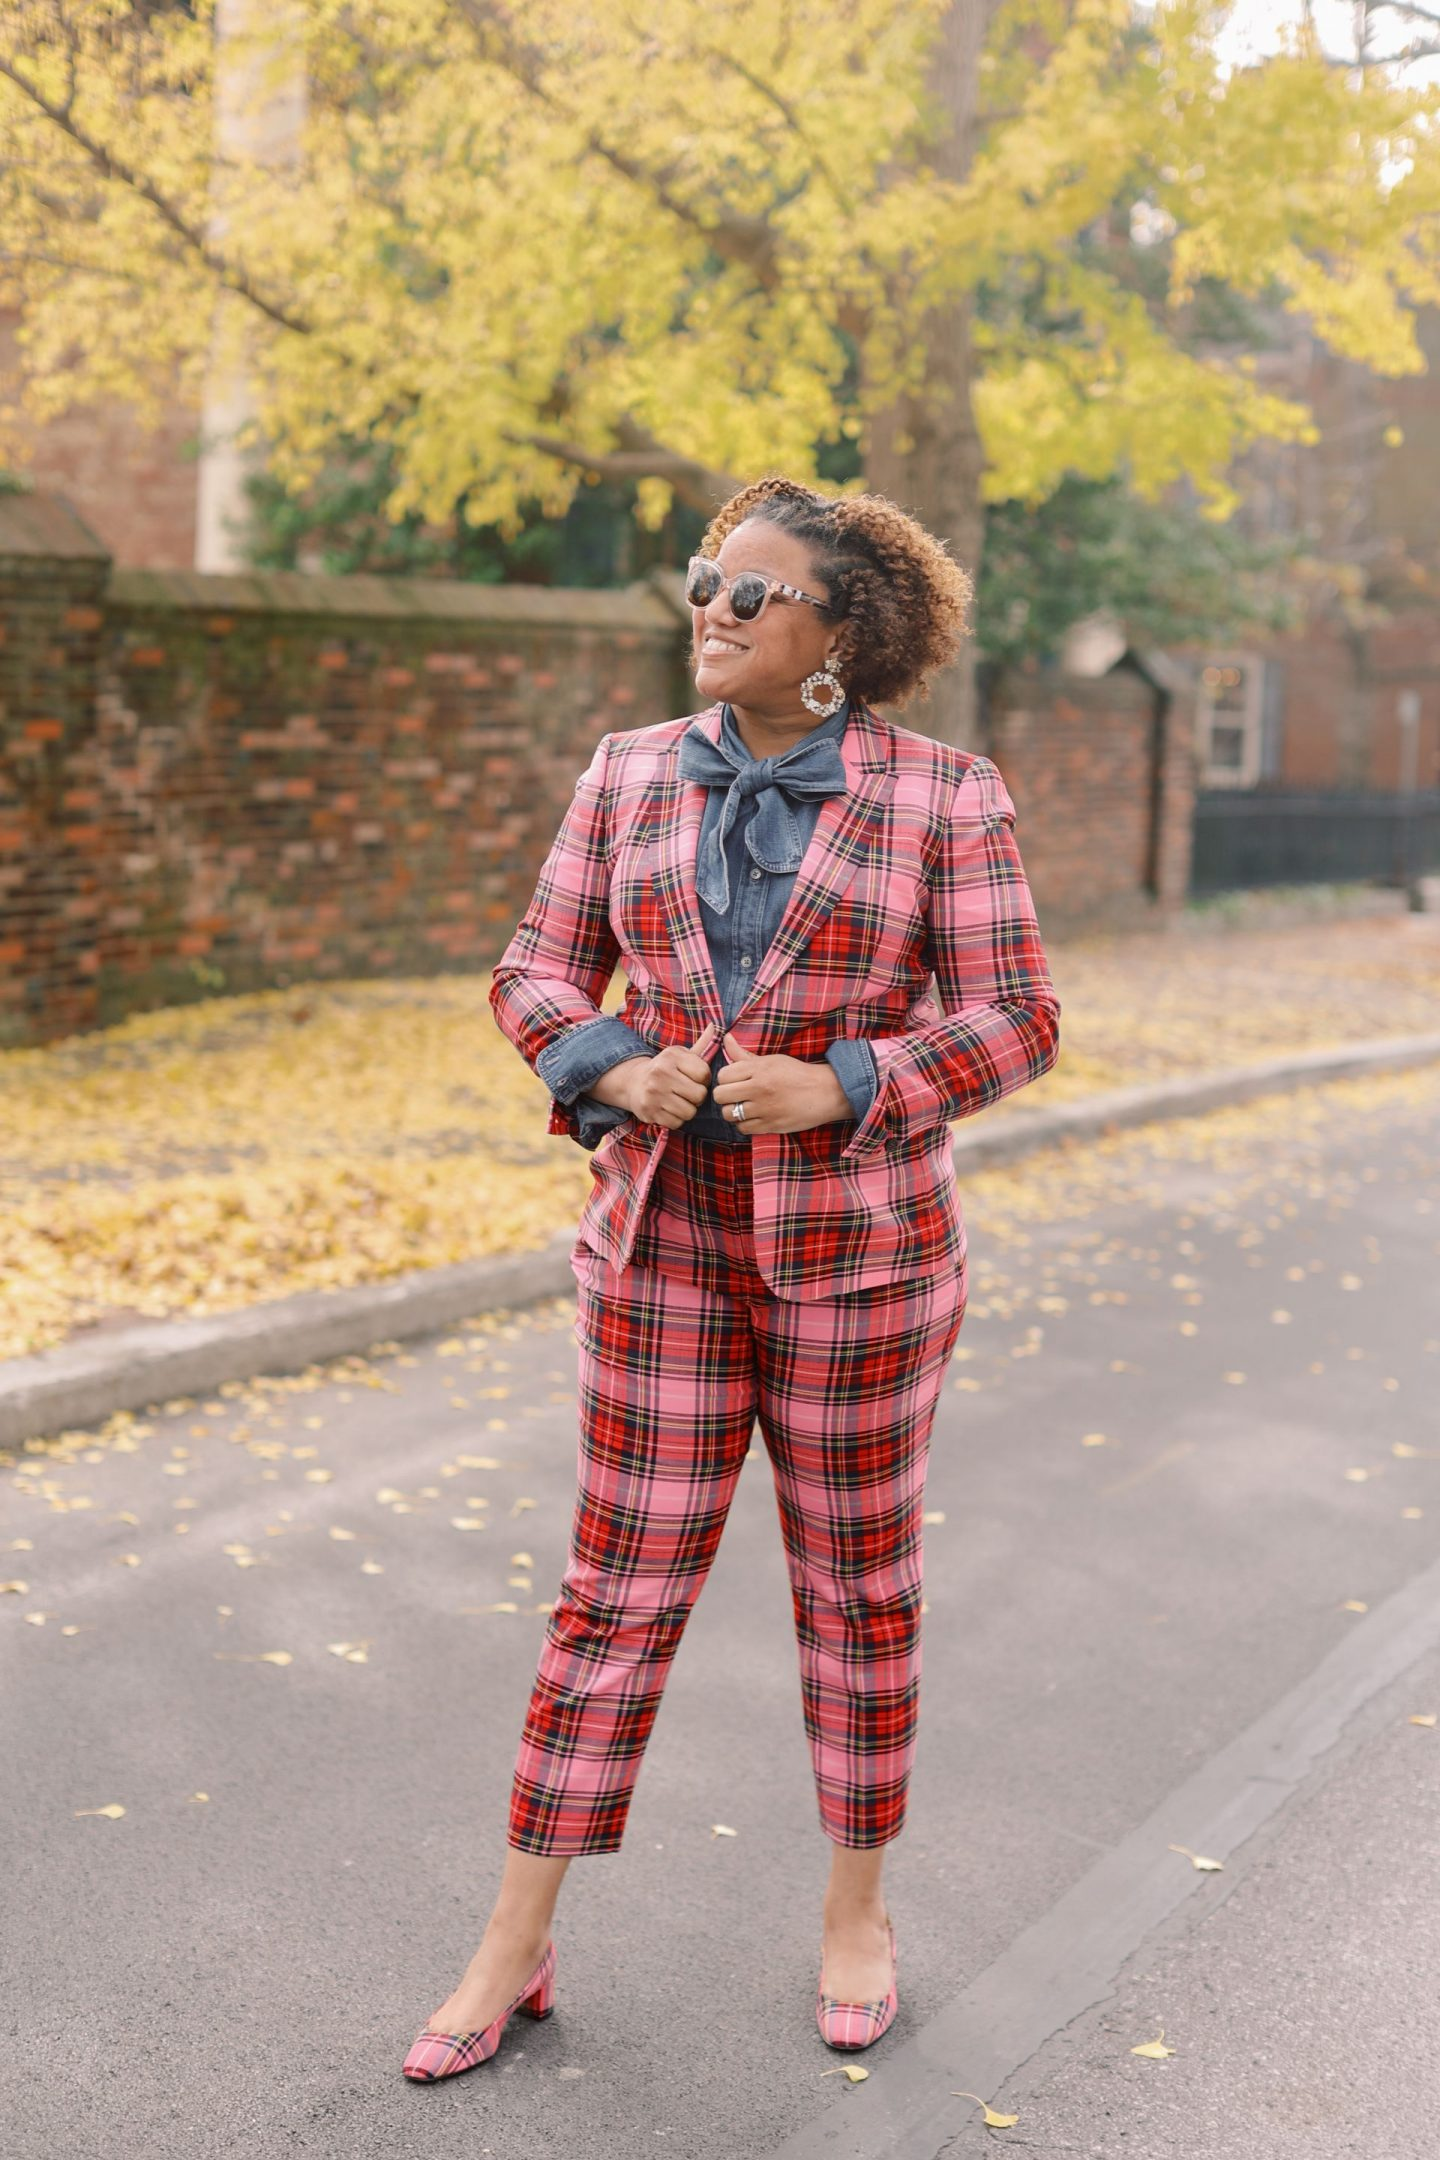 Pink Clothing by popular Kentucky fashion blog, Really Rynetta: image of a woman wearing a J. Crew pink Stewart tartan suit with a denim button up shirt.